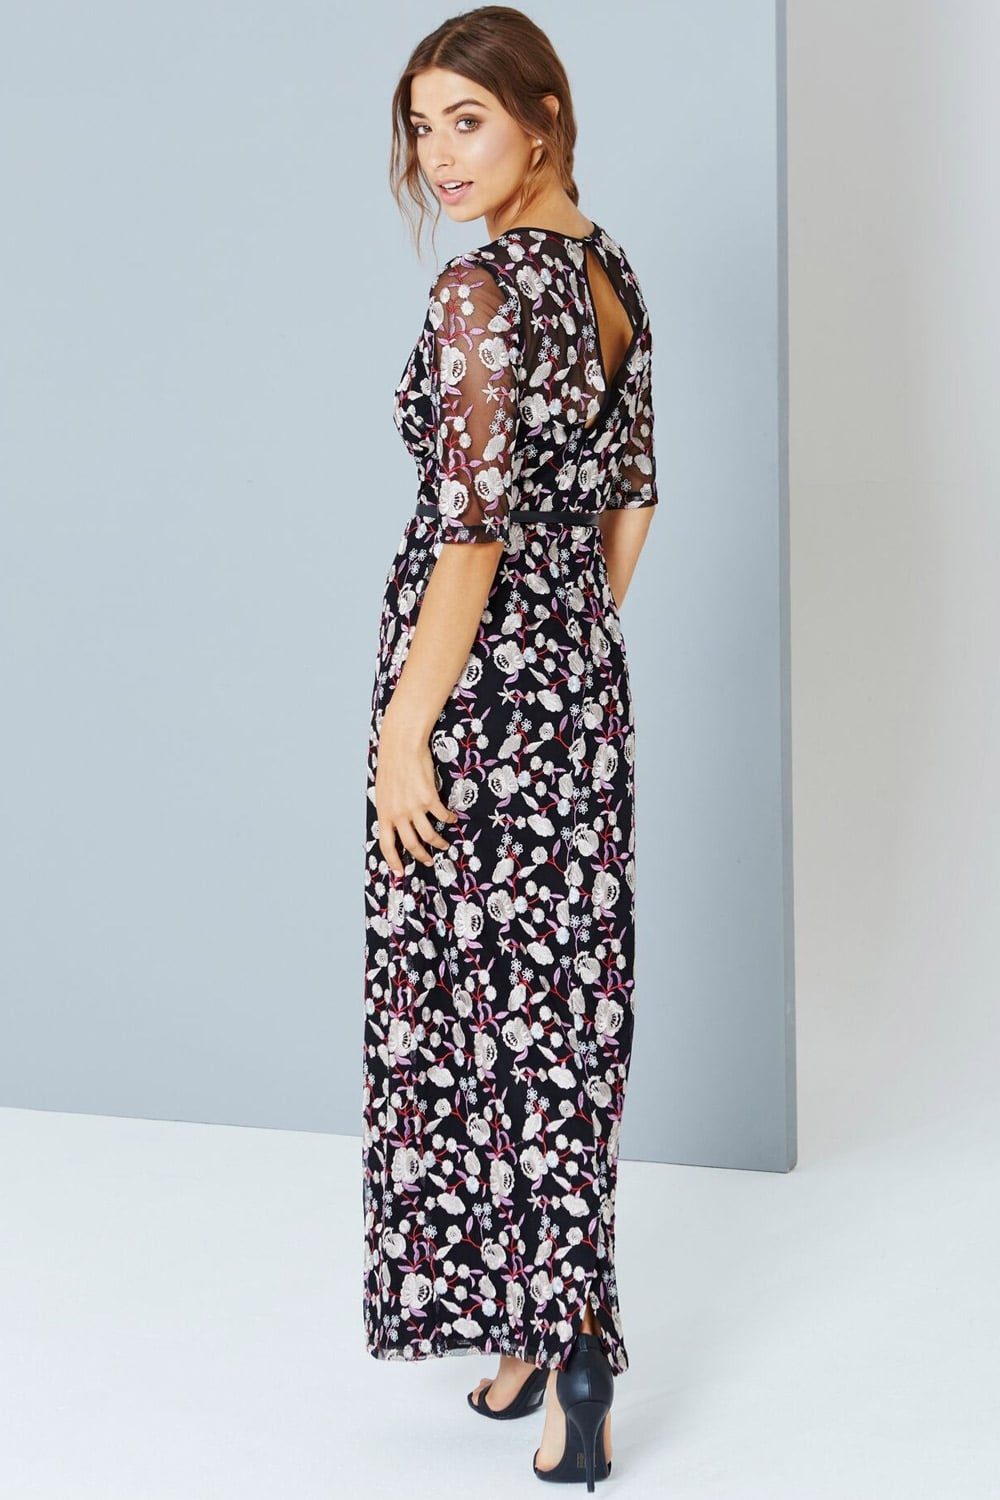 a19941a8562 Little Mistress Embroidered Floral Maxi Dress - Little Mistress from ...